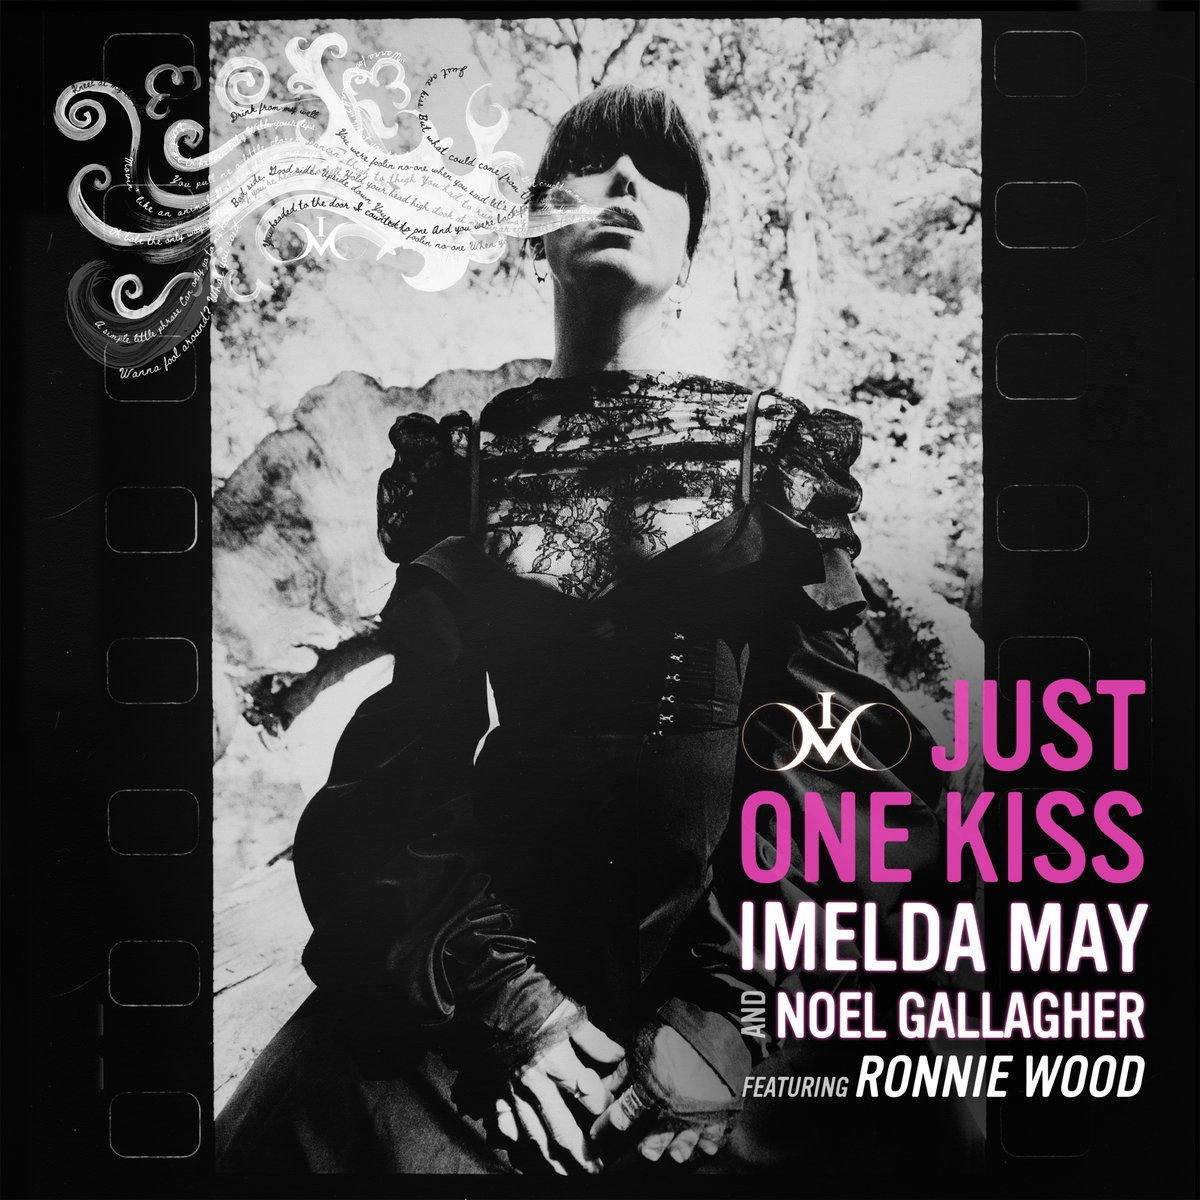 News – Imelda May – Just One Kiss with Noel Gallagher Featuring Ronnie Wood